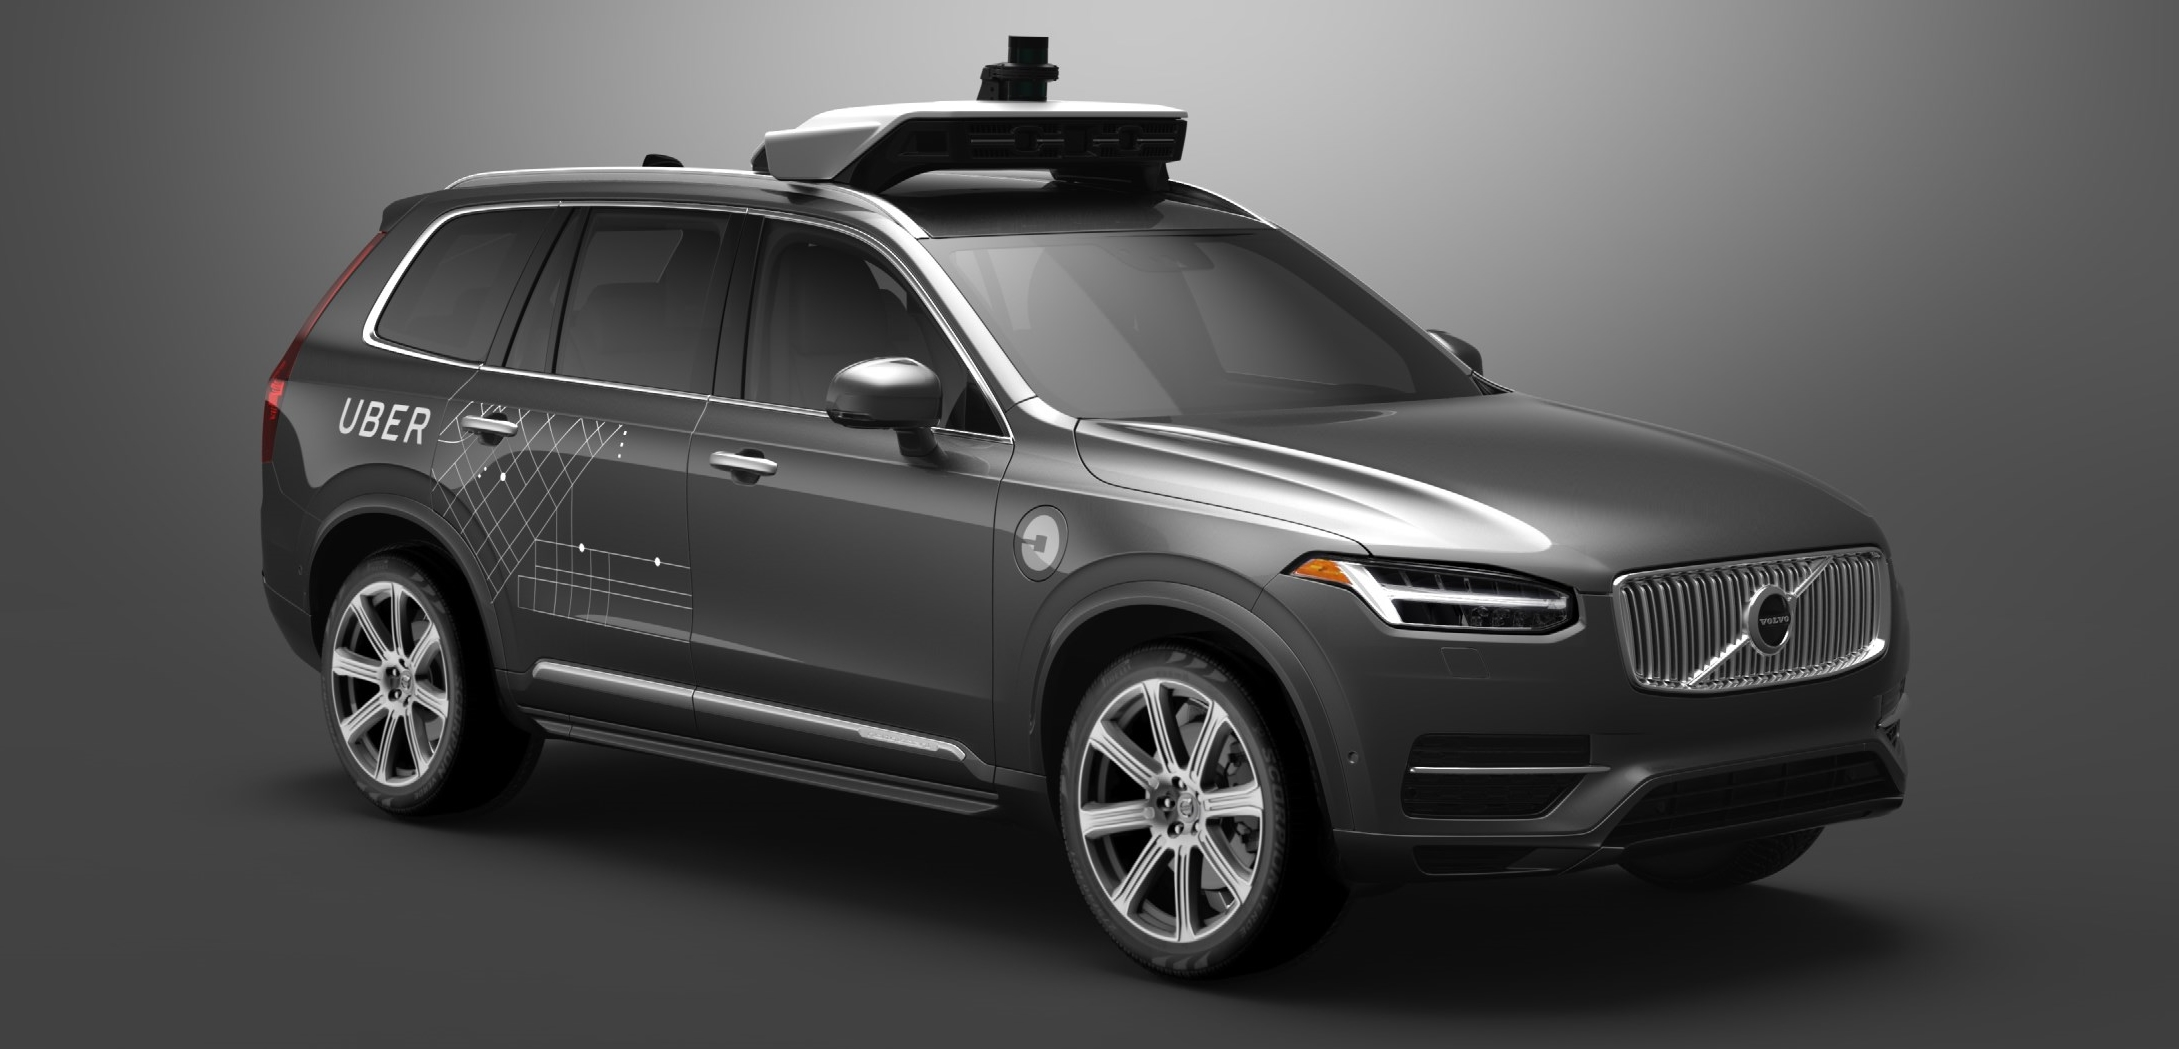 Uber Partners with Volvo, Acquires Otto, for Self-driving Taxis in Pittsburgh